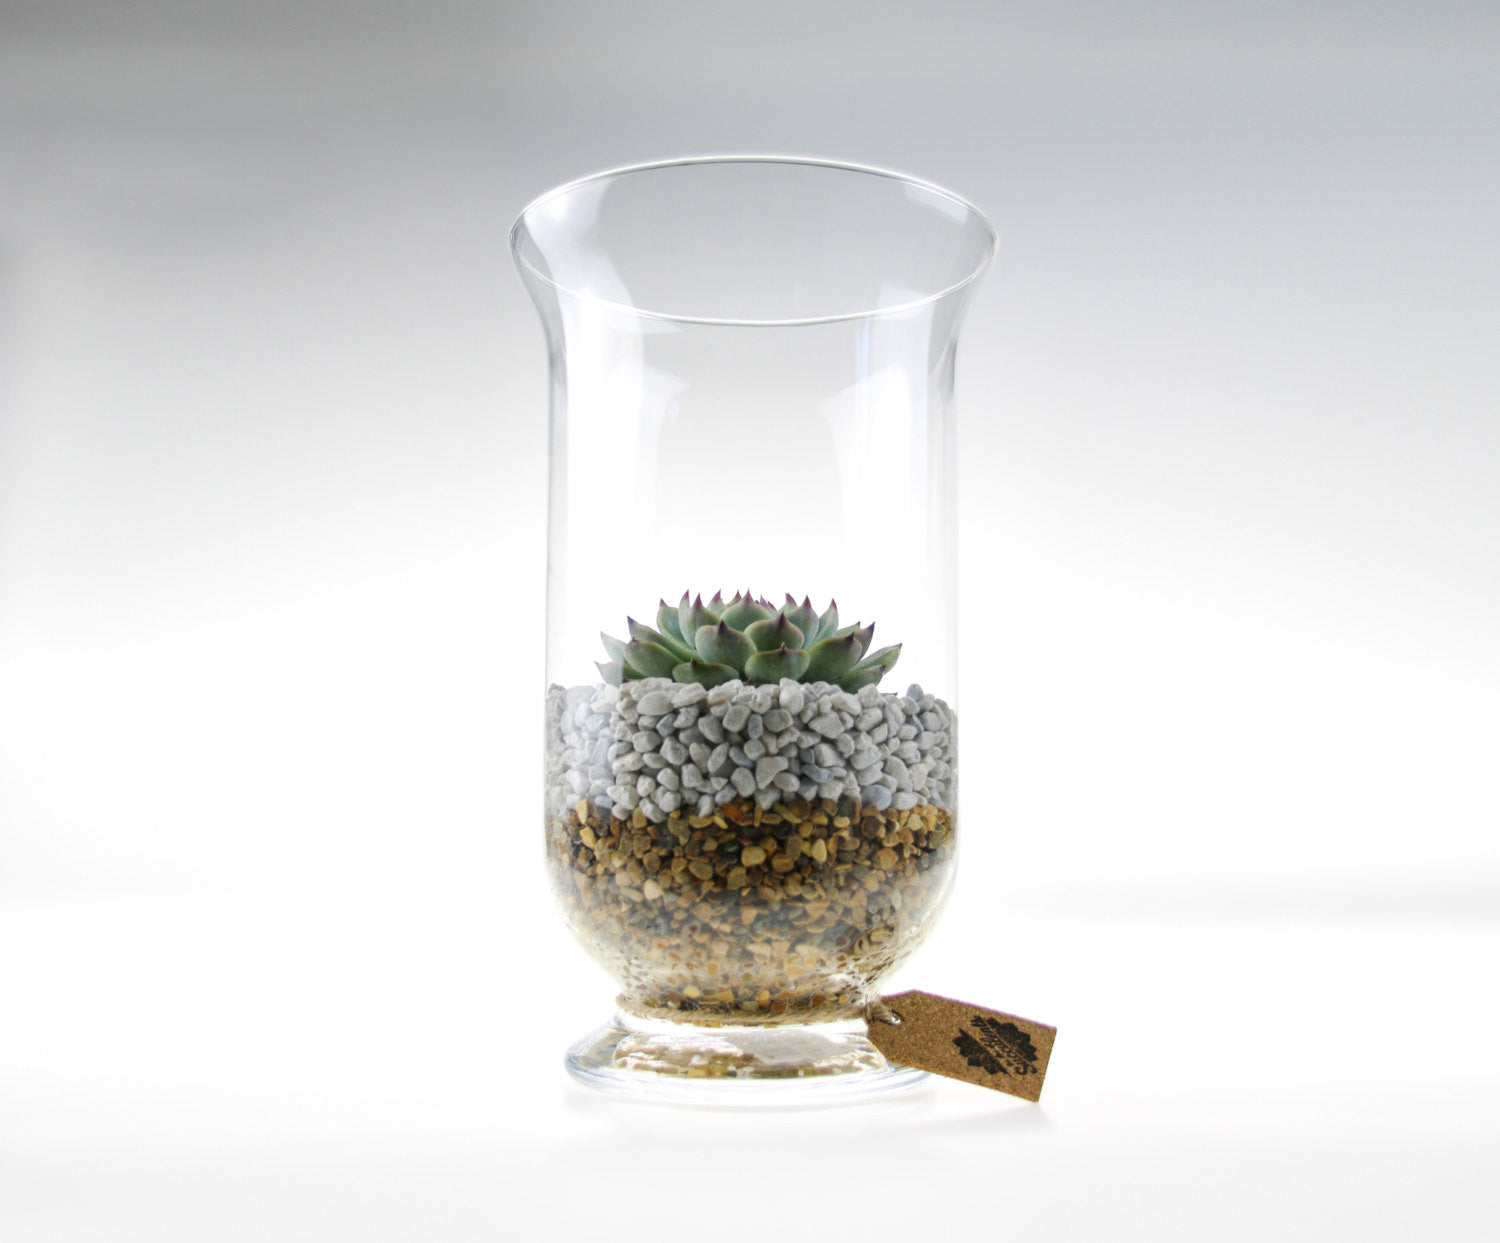 Tall Glass Terrarium Kit With Large Echeveria Succulent The Art Of